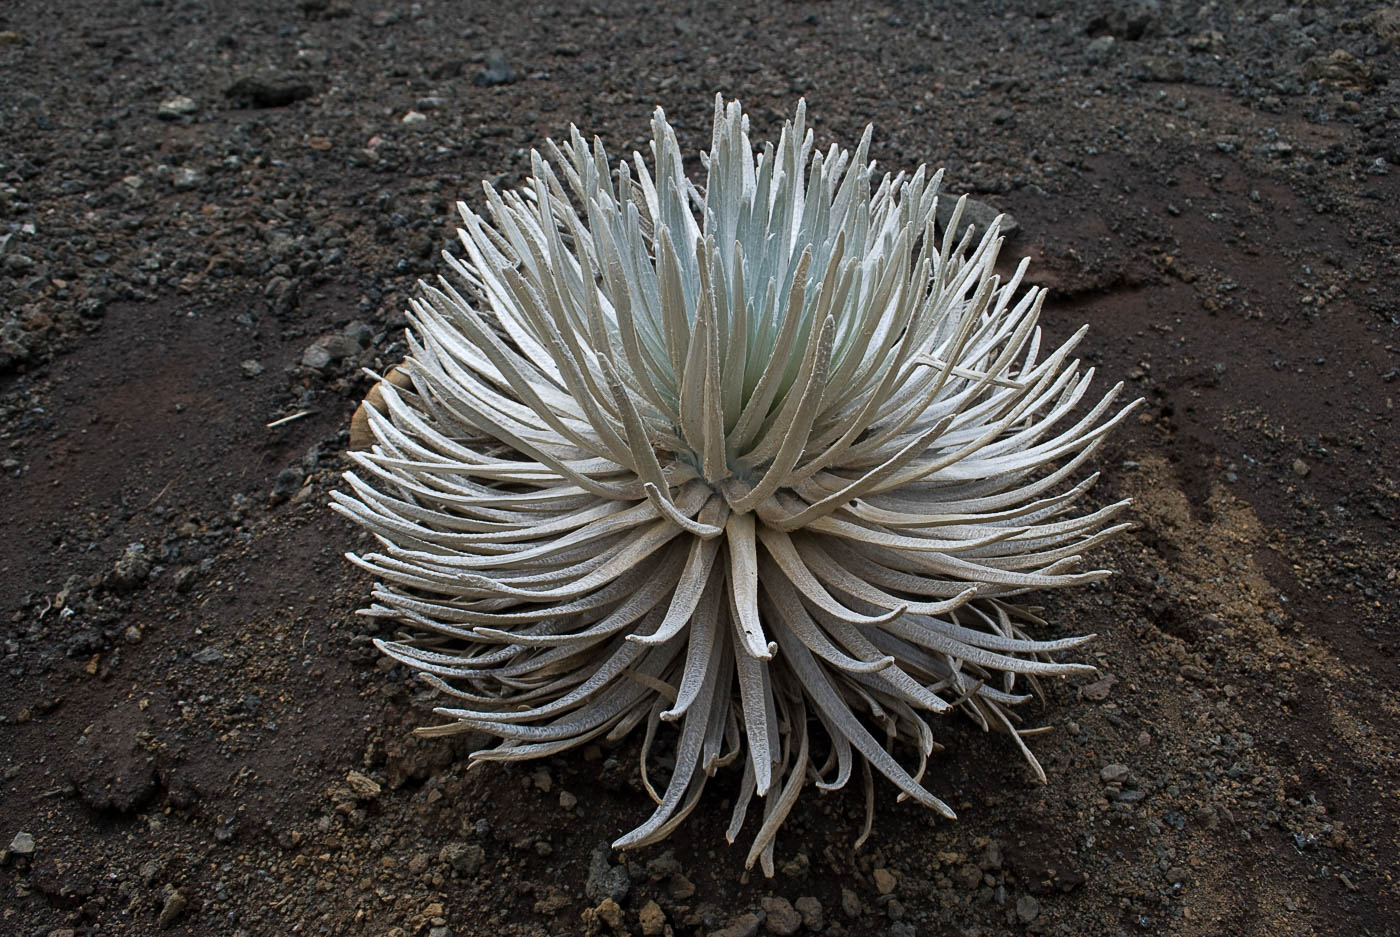 Silversword Trail, Haleakala Crater, Maui | Pono Images